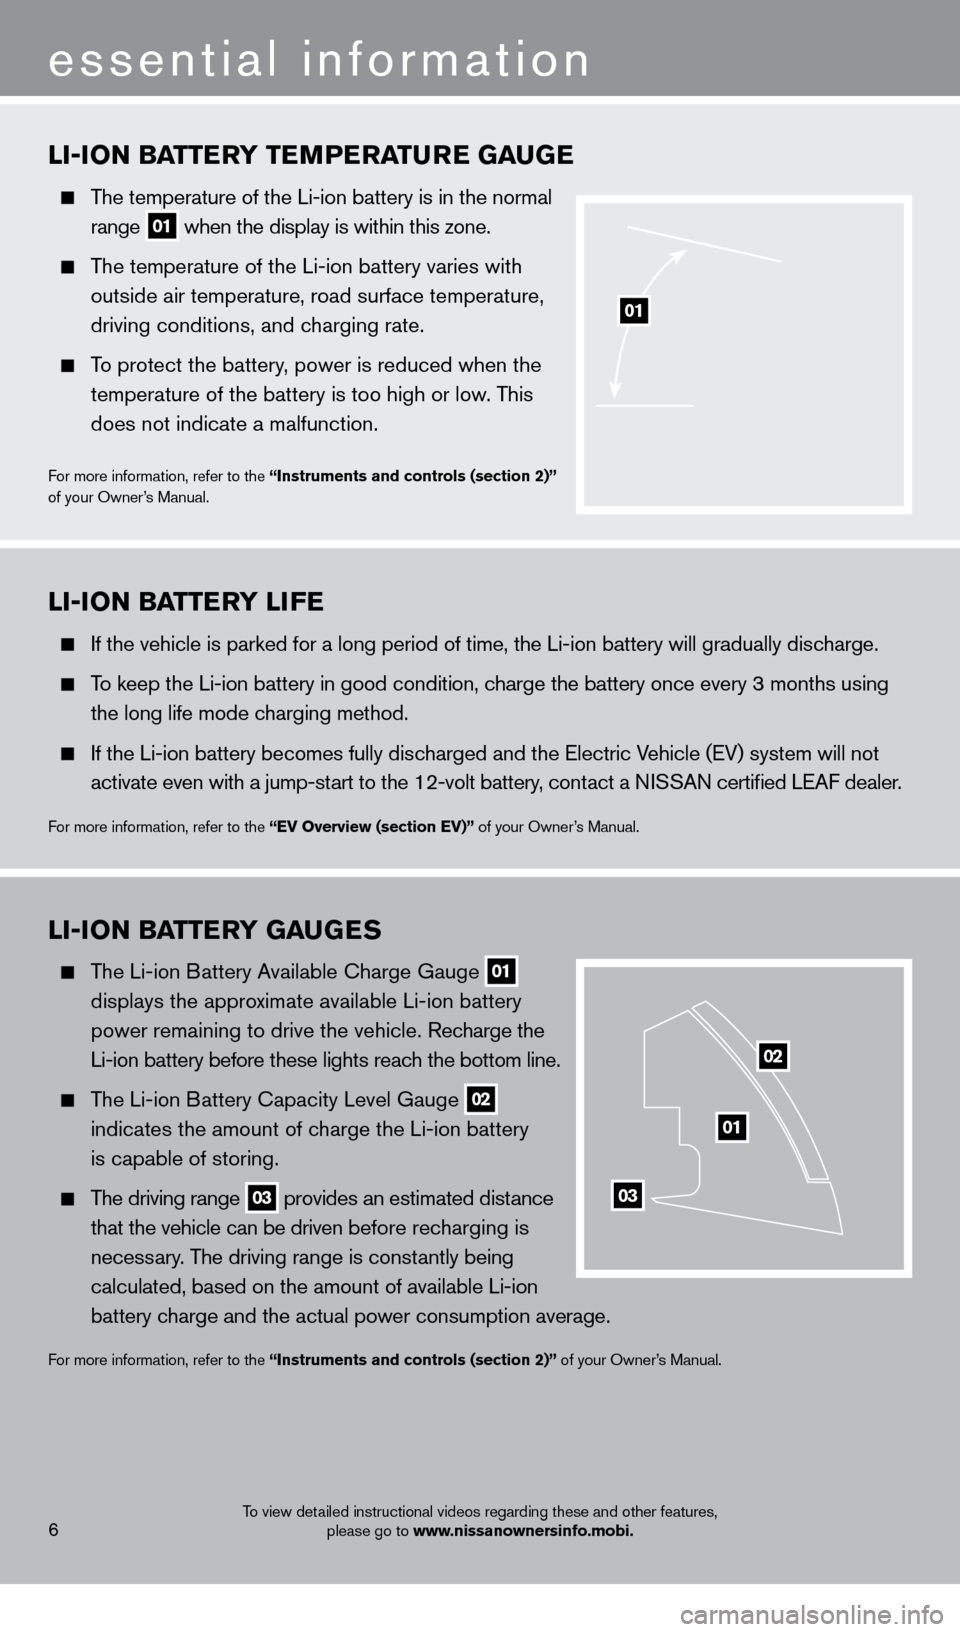 NISSAN LEAF 2013 1.G Quick Reference Guide LI-ION BaTTerY T eM P eraT ure  G auGe   The temperature of the Li-ion battery is in the normal    range  01 when the display is within this zone.     The temperature of the Li-ion battery varies with